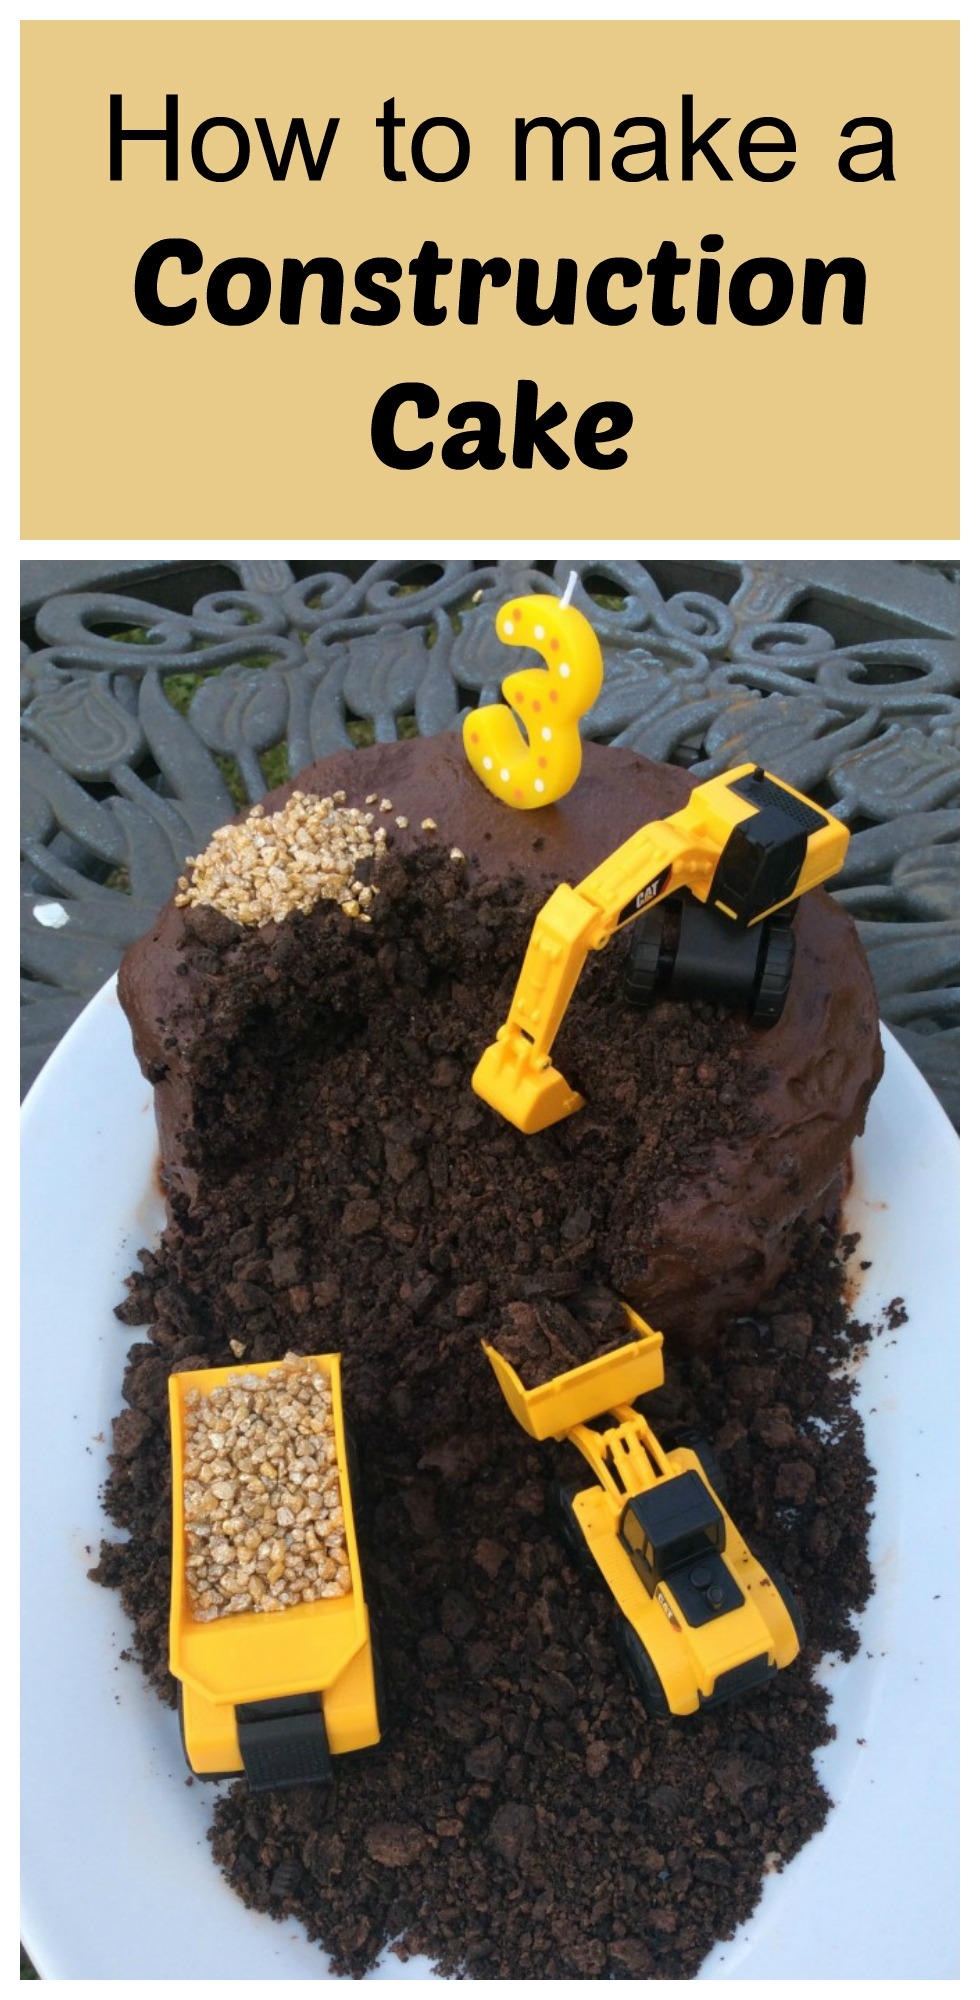 How To Make A Chocolate Construction Cake The Easiest And Most